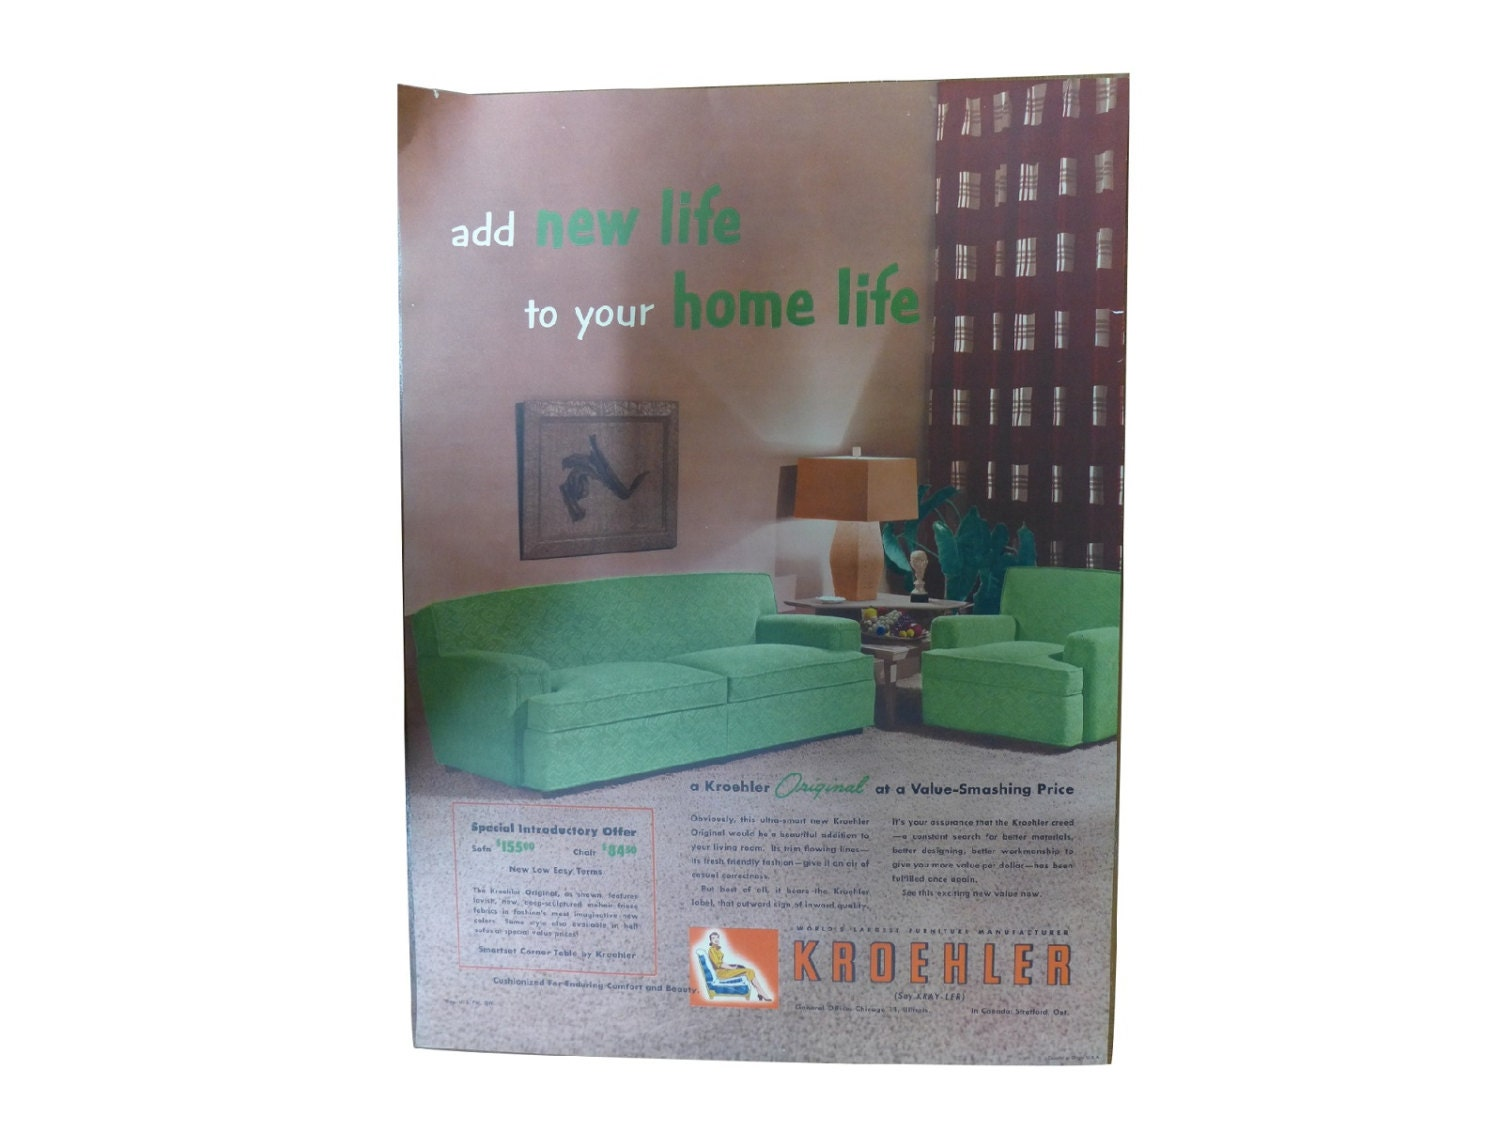 Original 1950s Kroehler Furniture Advertisement Lithograph